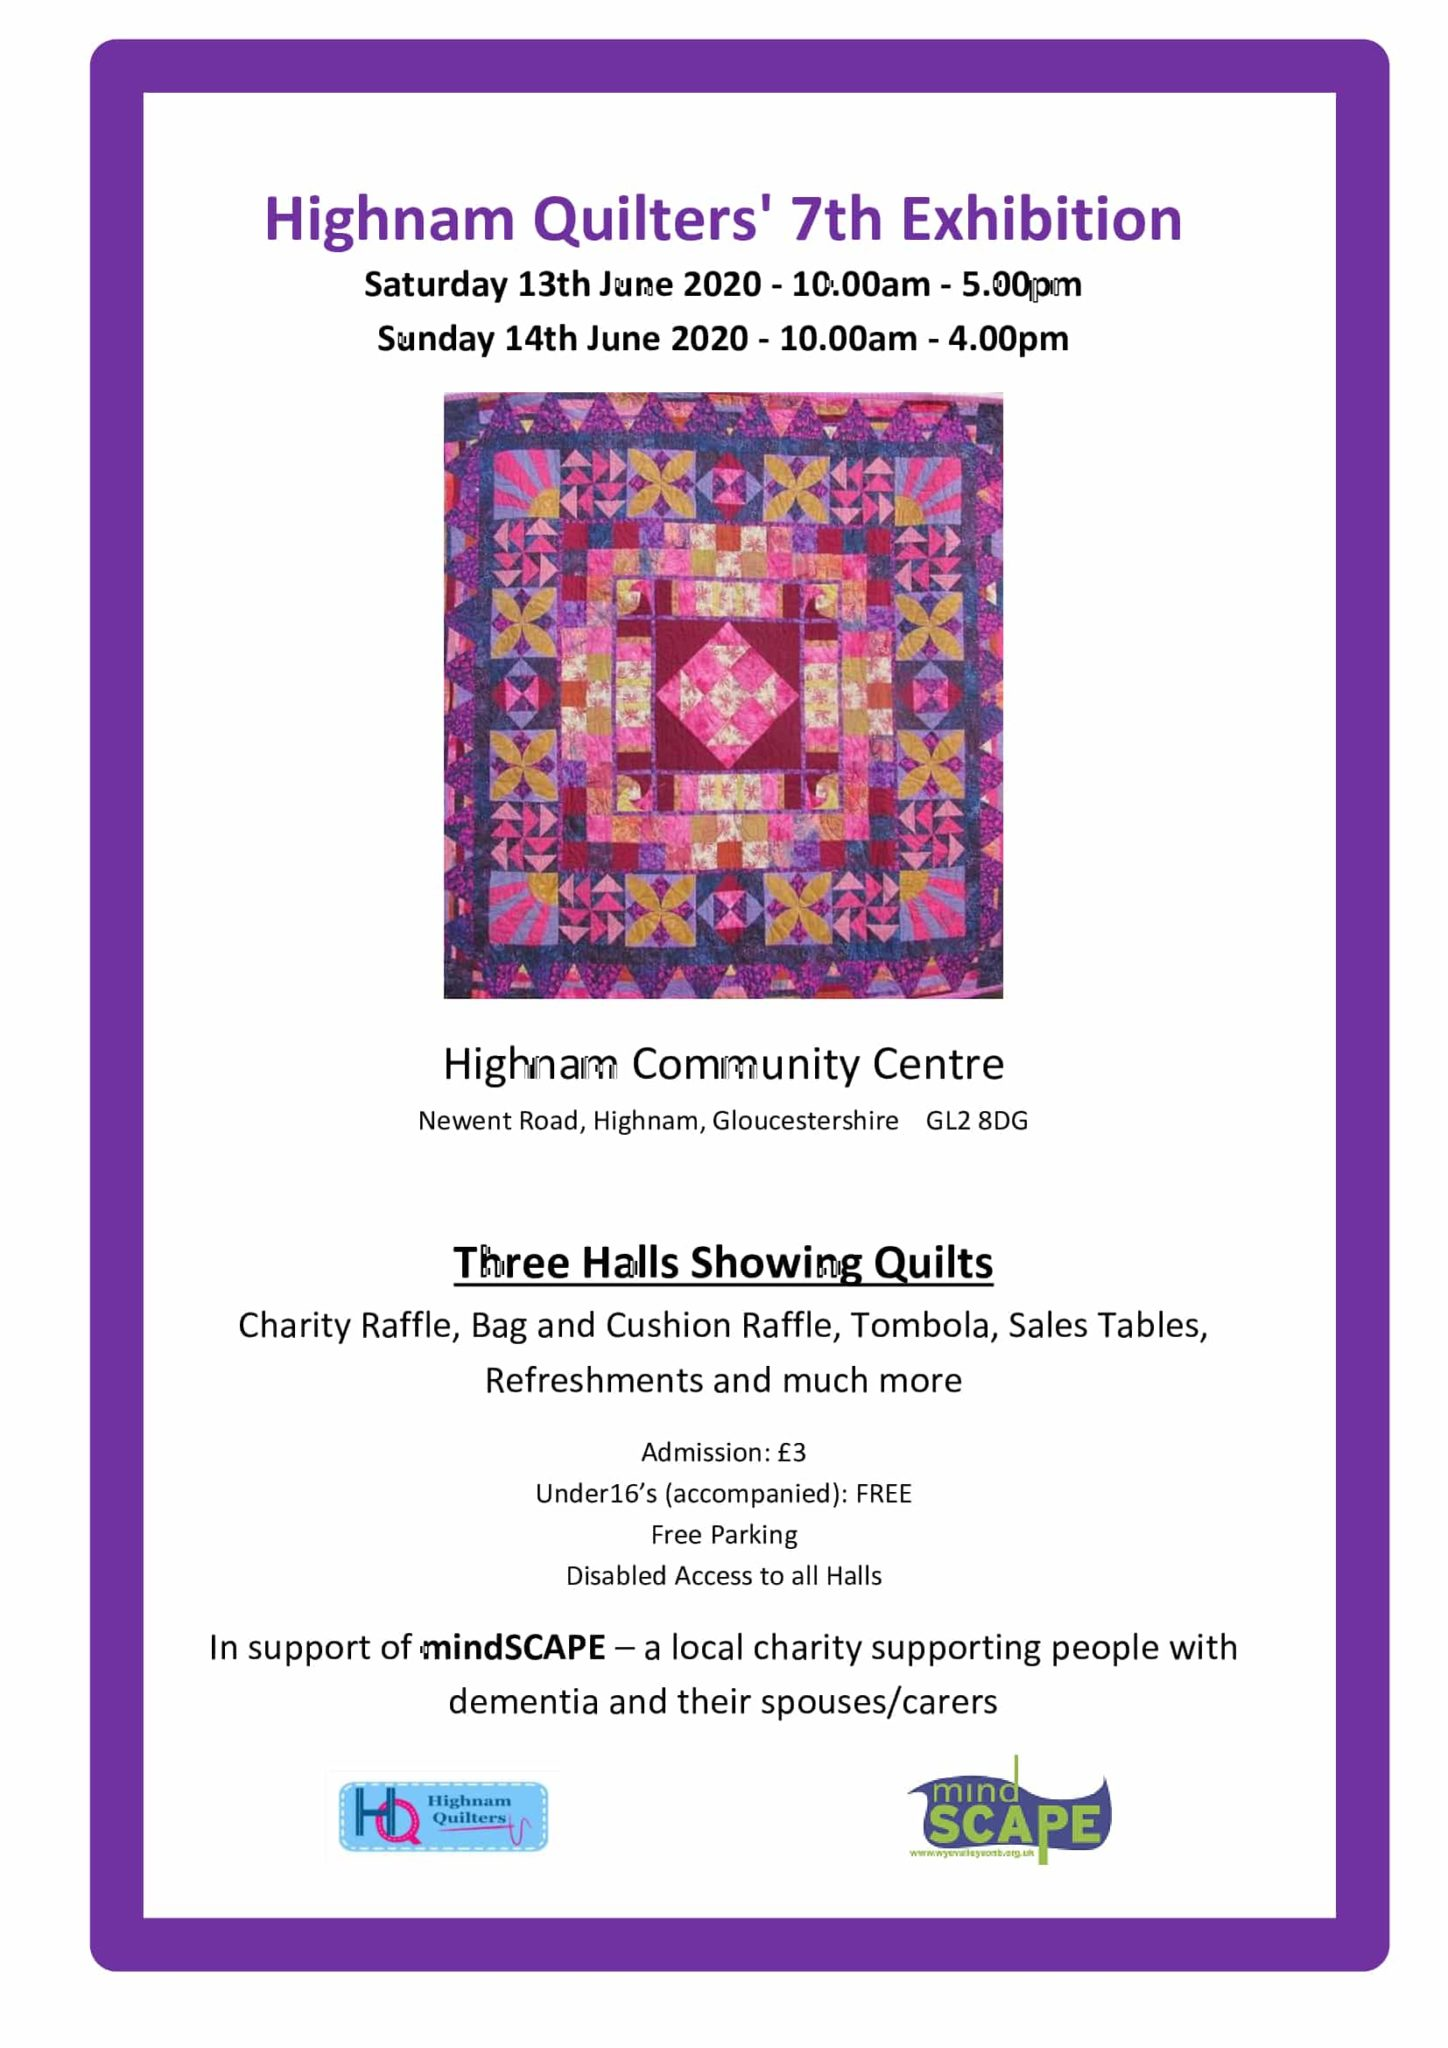 Highnam-Quilters-7th-Exhibition-poster-2020